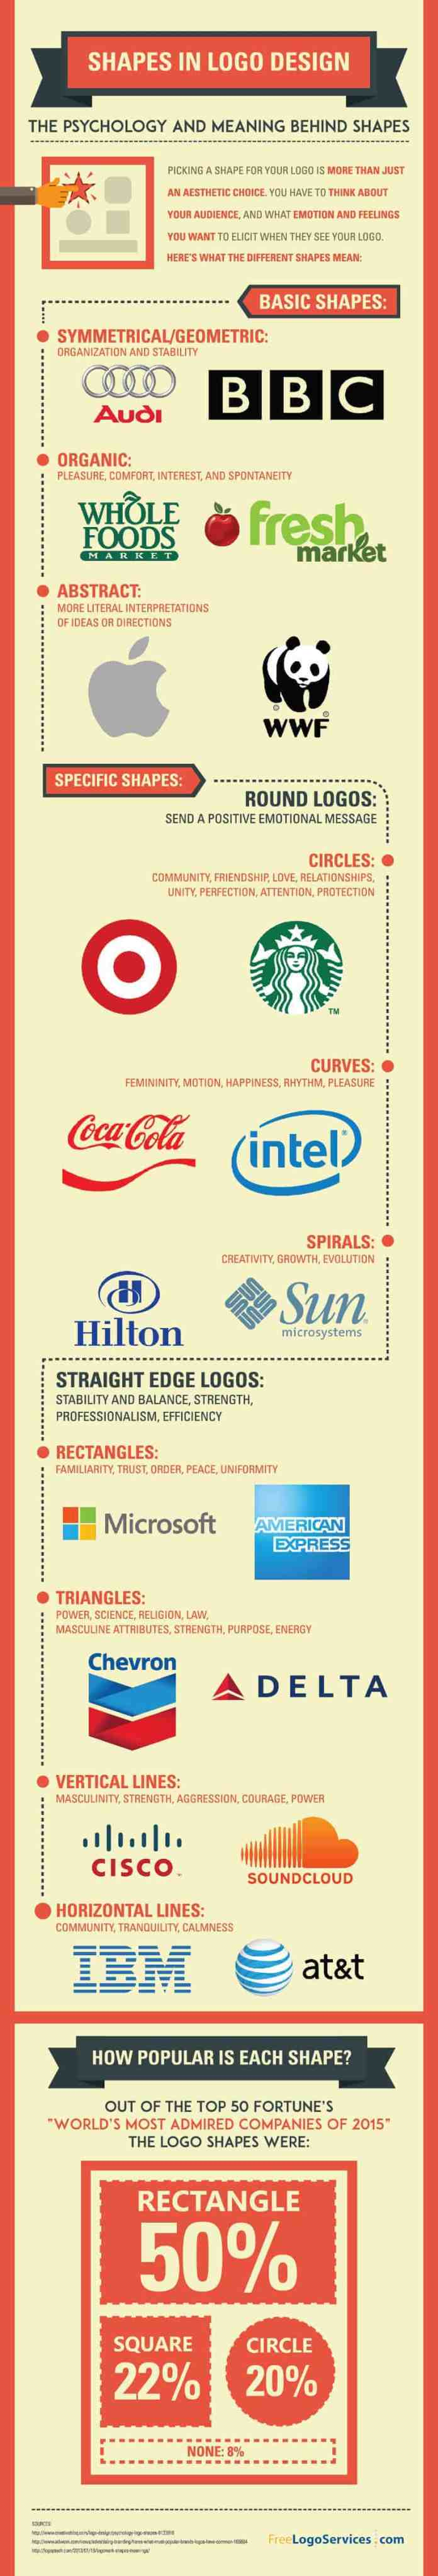 psychology behind logo shapes